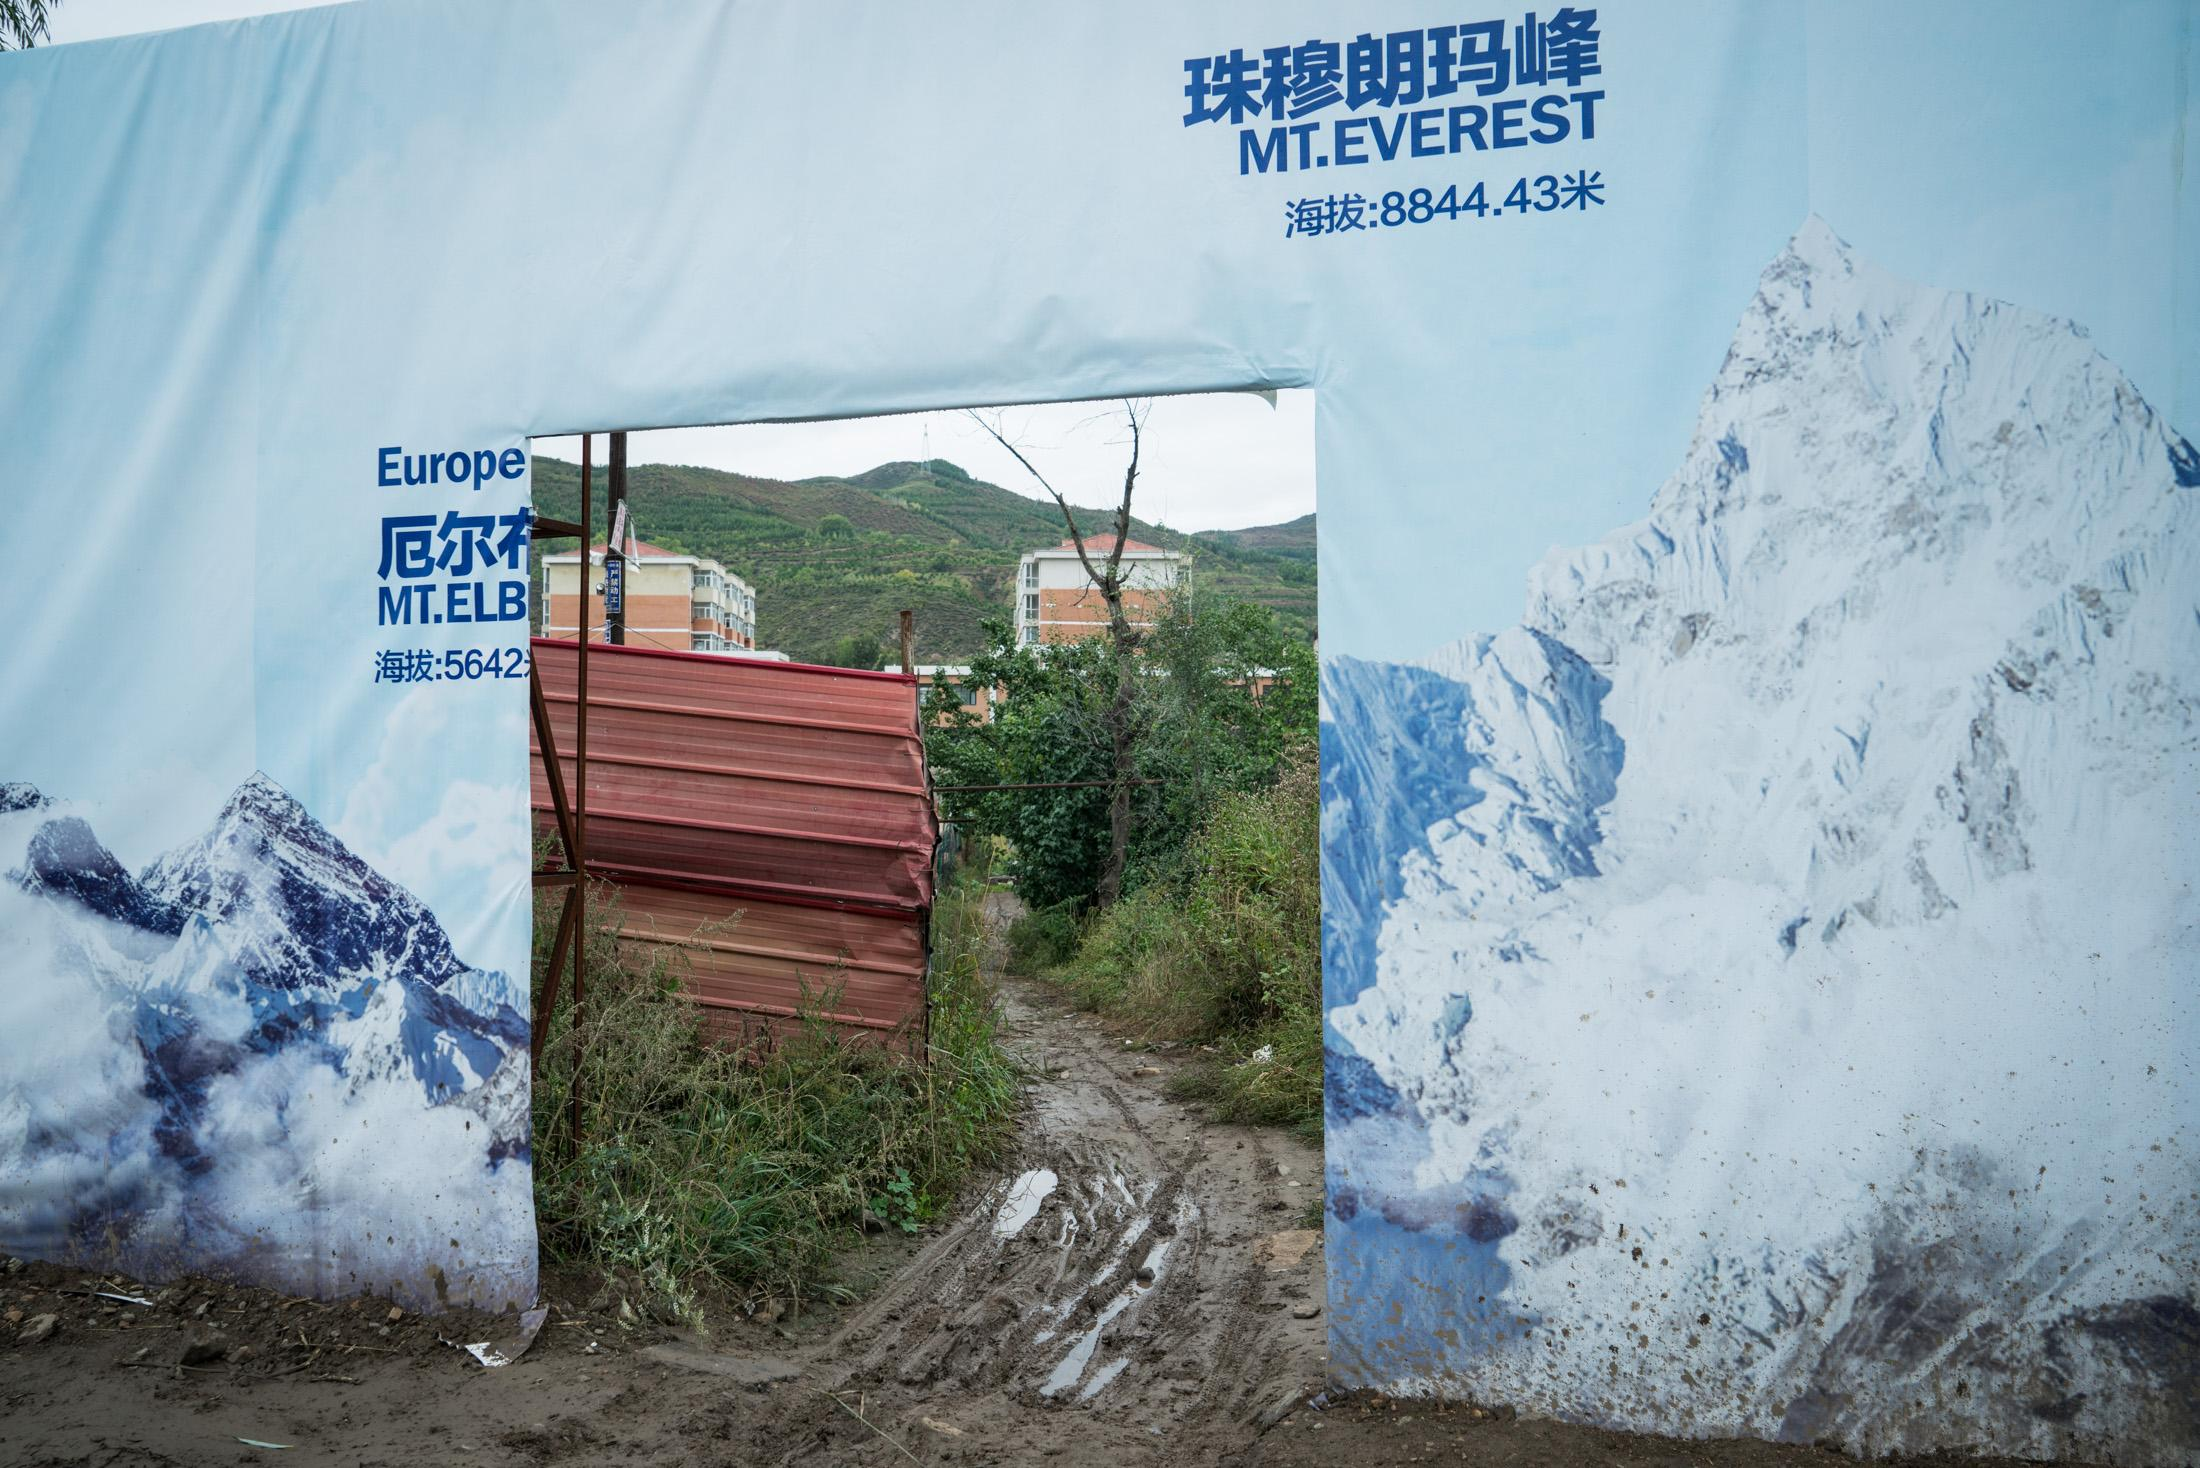 An advertisement board covered by pictures of the world's highest mountains in Chongli, China, in September 2015.